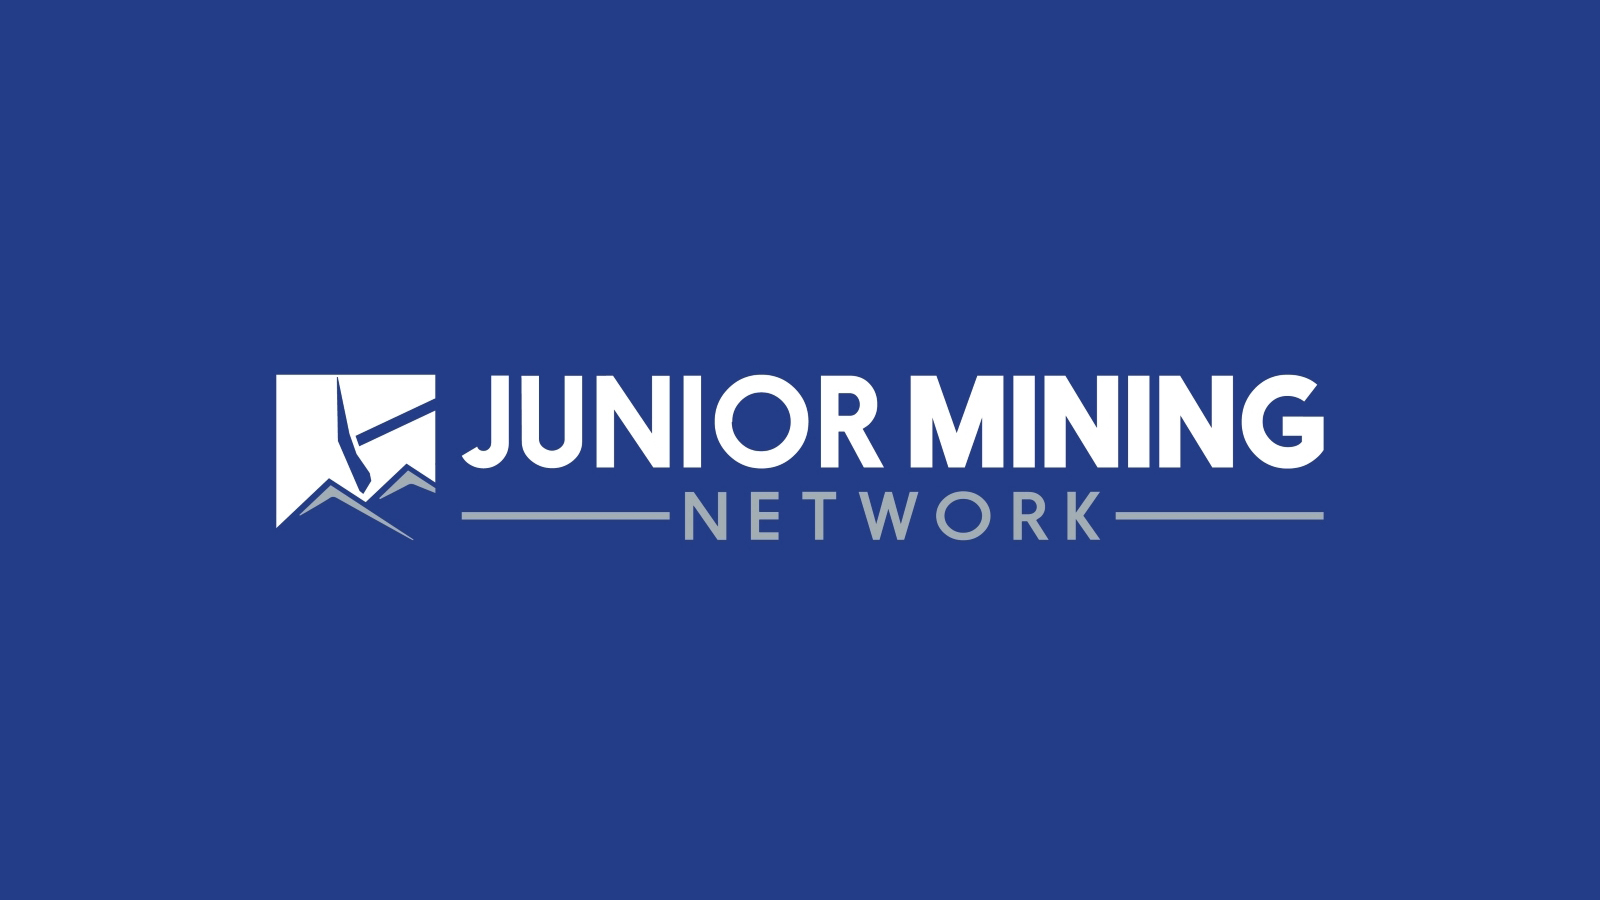 Cannot view this image? Visit: https://www.juniorminingnetwork.com/images/news/newsfile/32201_dni5.jpg